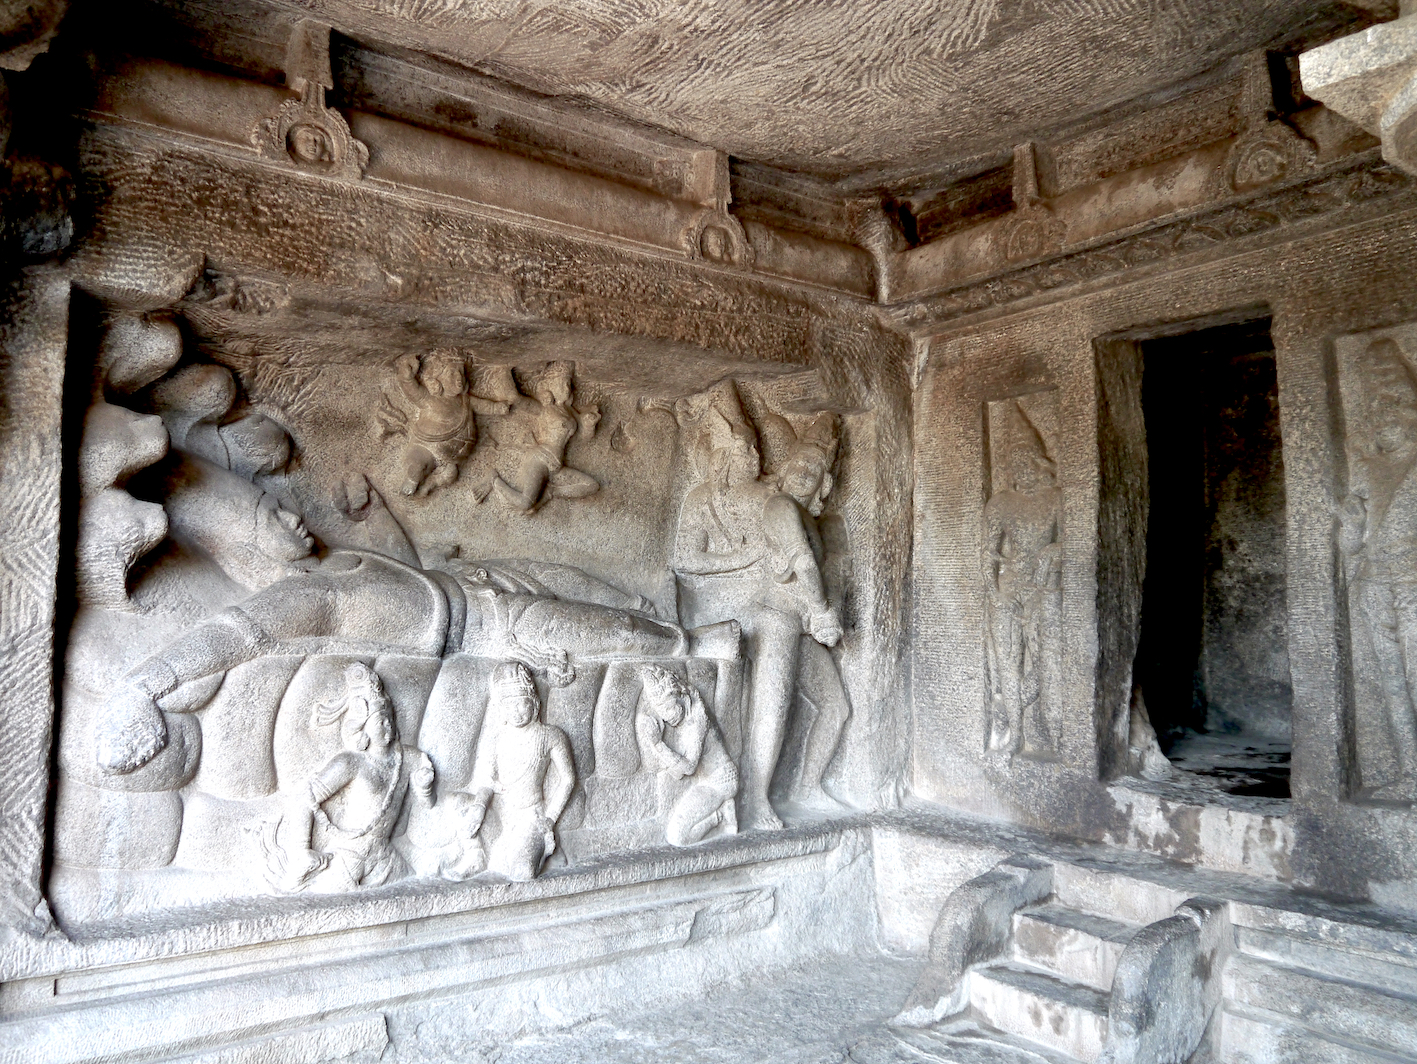 Vishnu Reclining on the Serpent Bed (Sheshanaag) and Dreaming the World, 7 c. CE, cave temple, Mahabalipuram, Tamilnadu